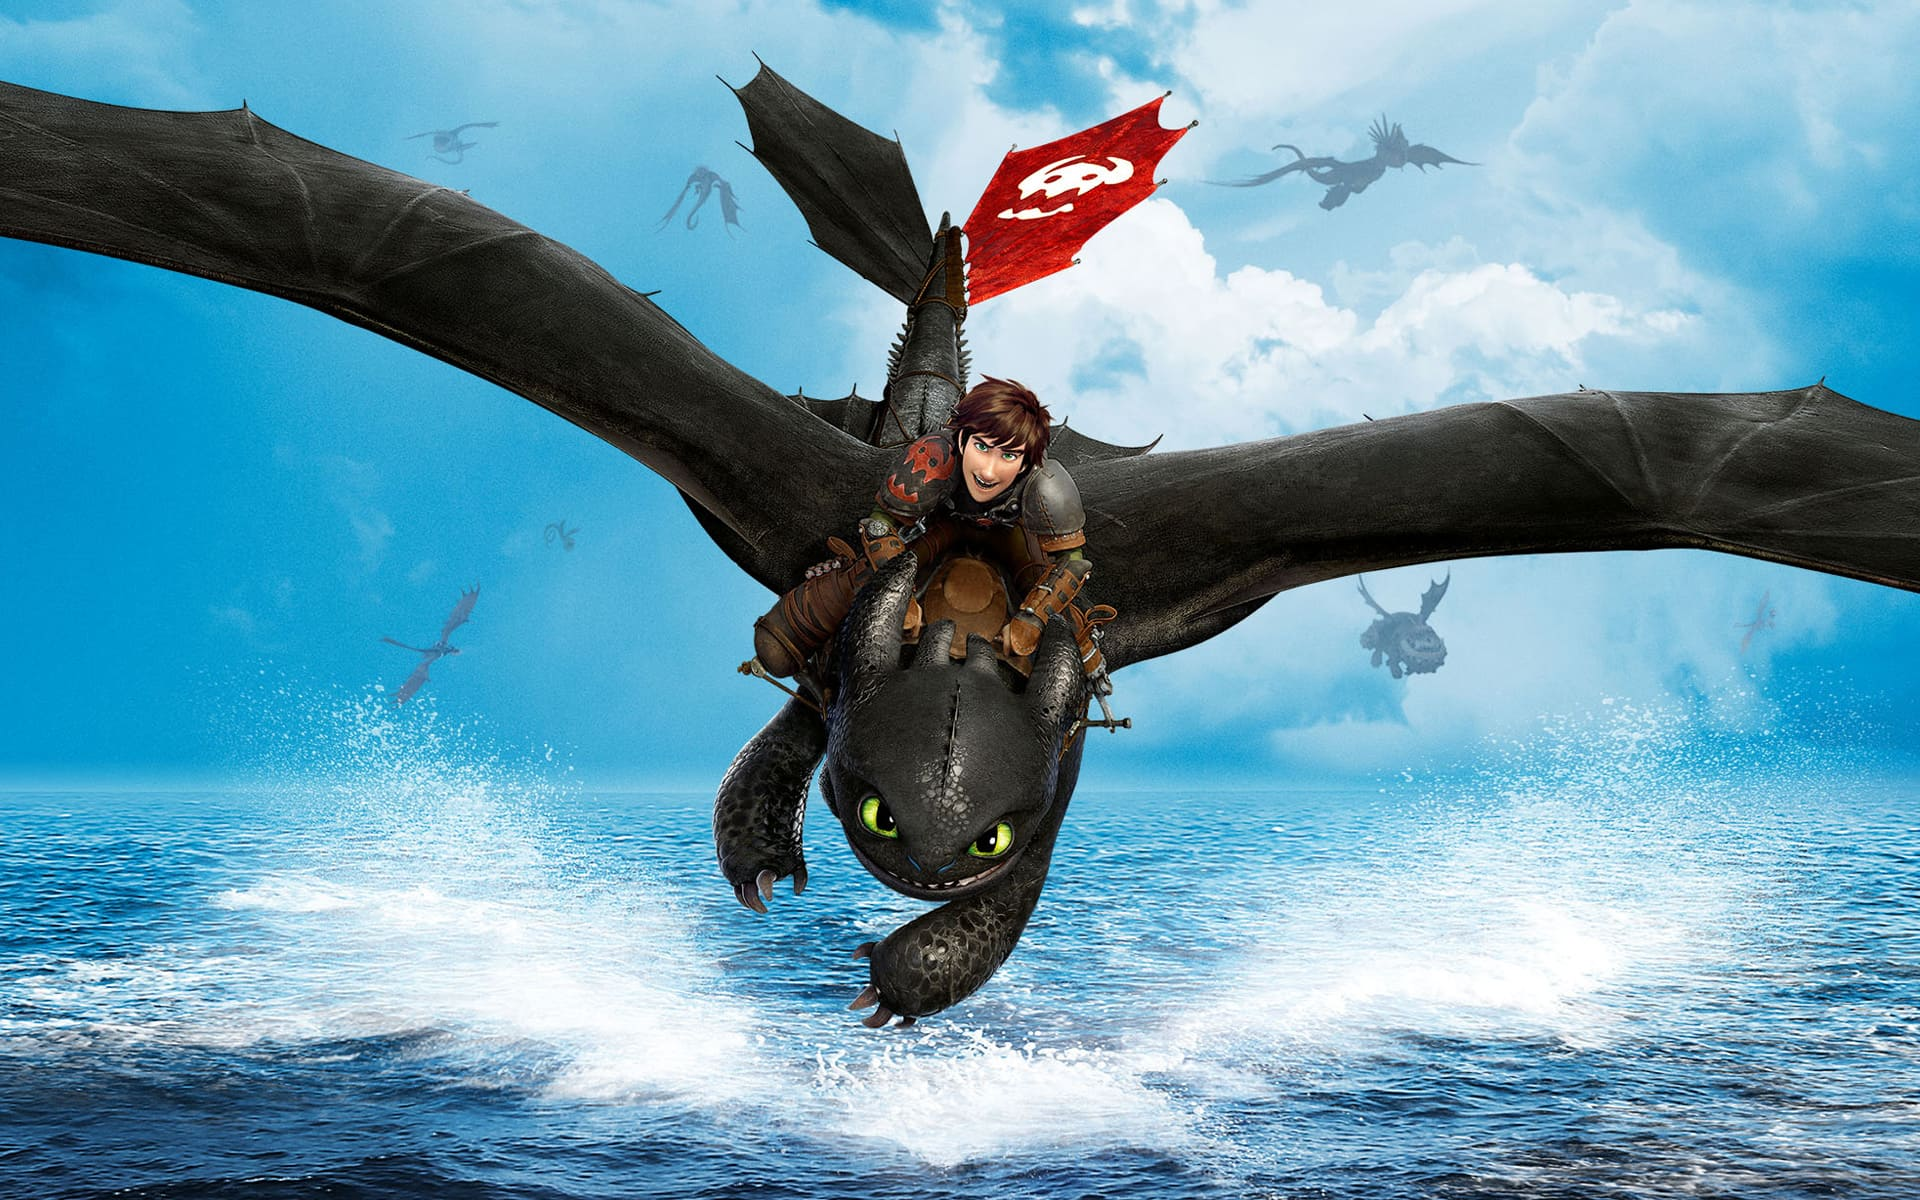 3 ways How to Train Your Dragon could come to Universal's theme parks